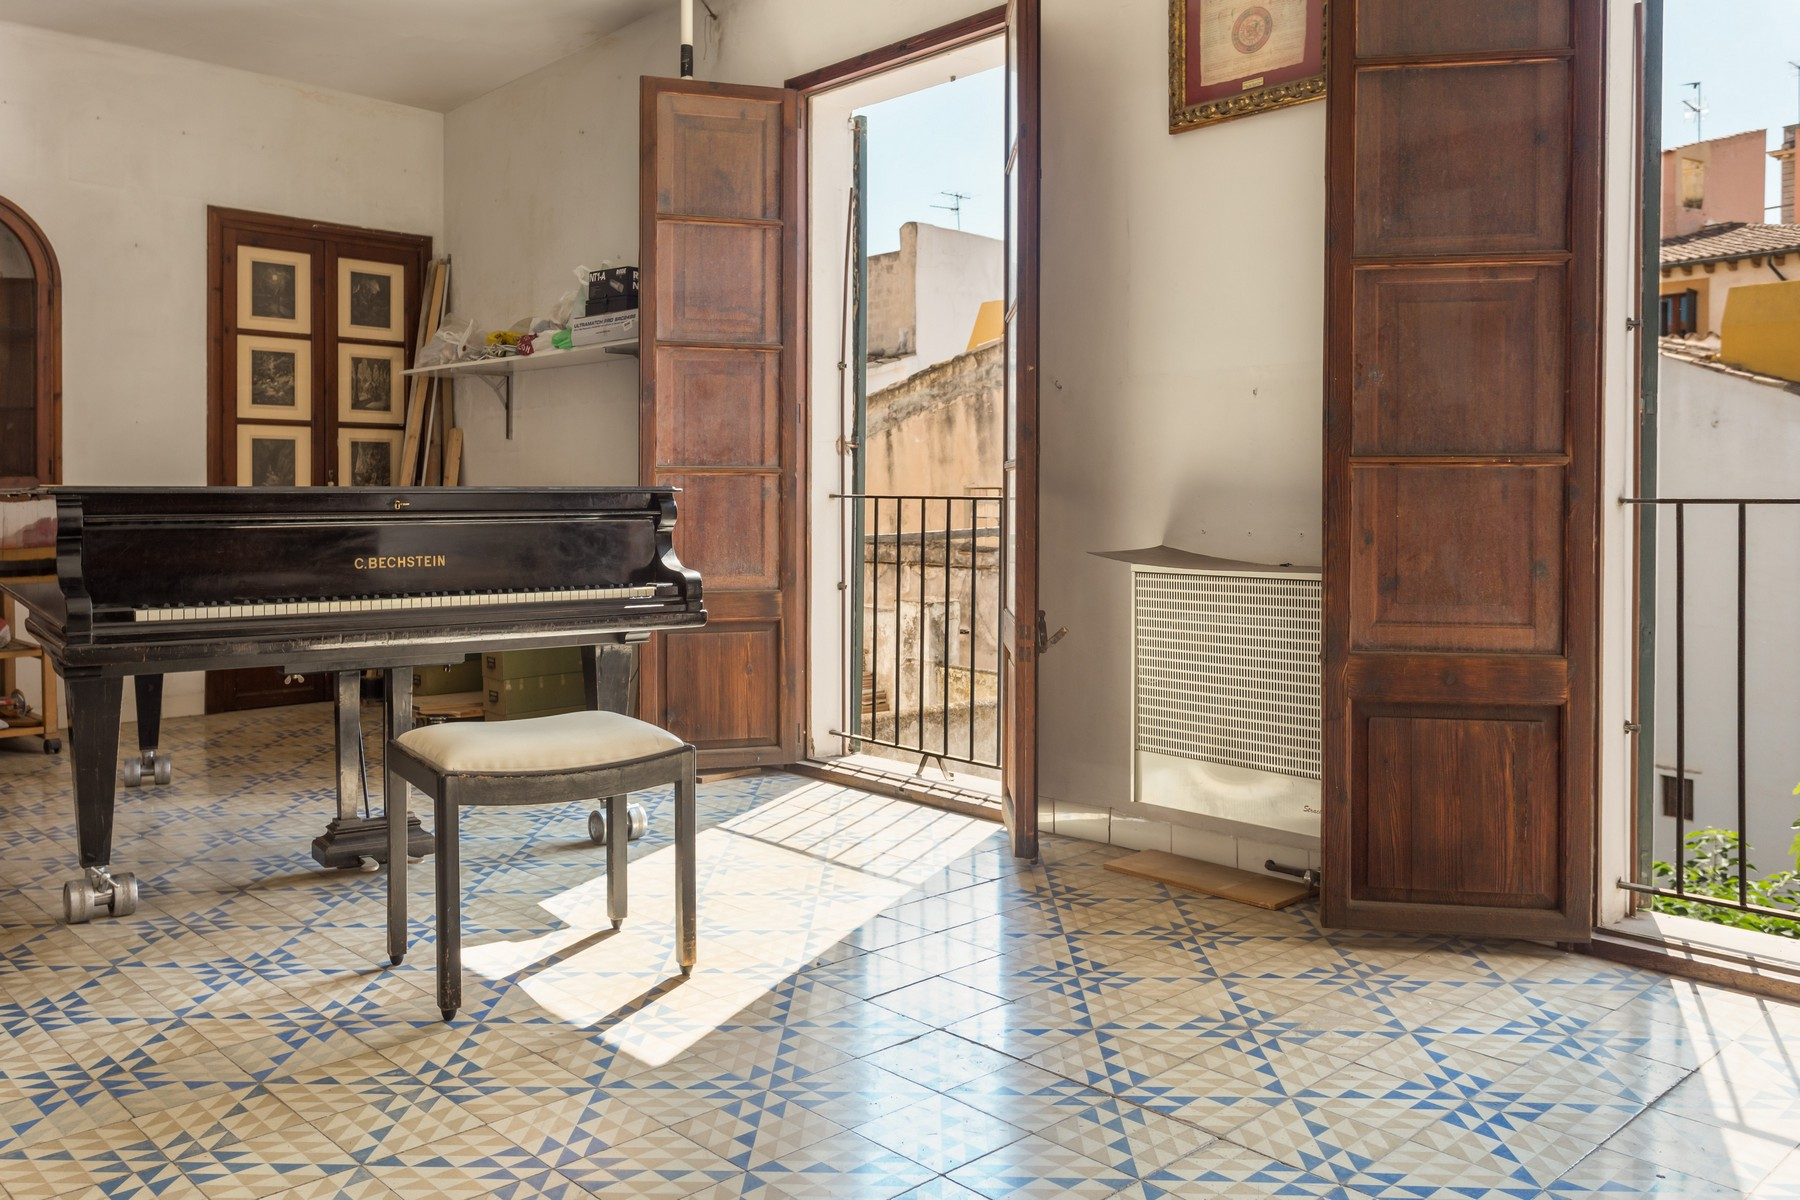 Apartment for Sale at Apartment with terrace in Palma's Centre Palma Center, Mallorca, 07001 Spain